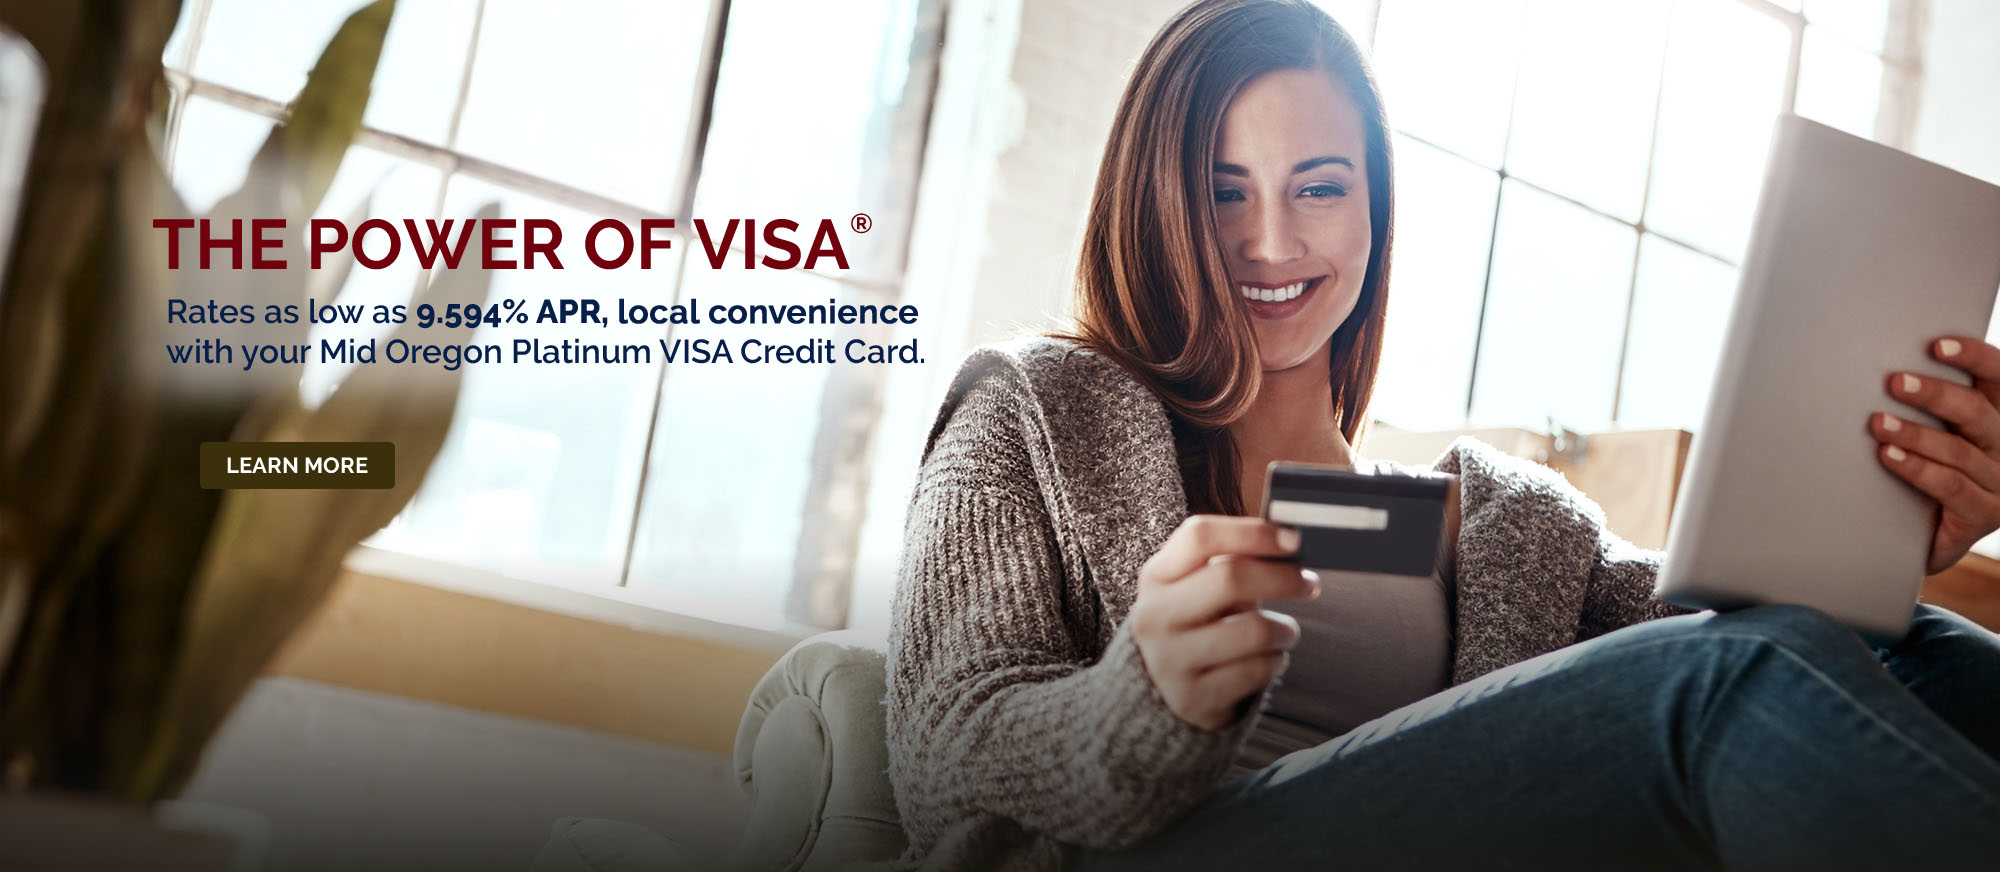 Woman relaxing and shopping online with her credit card VISA